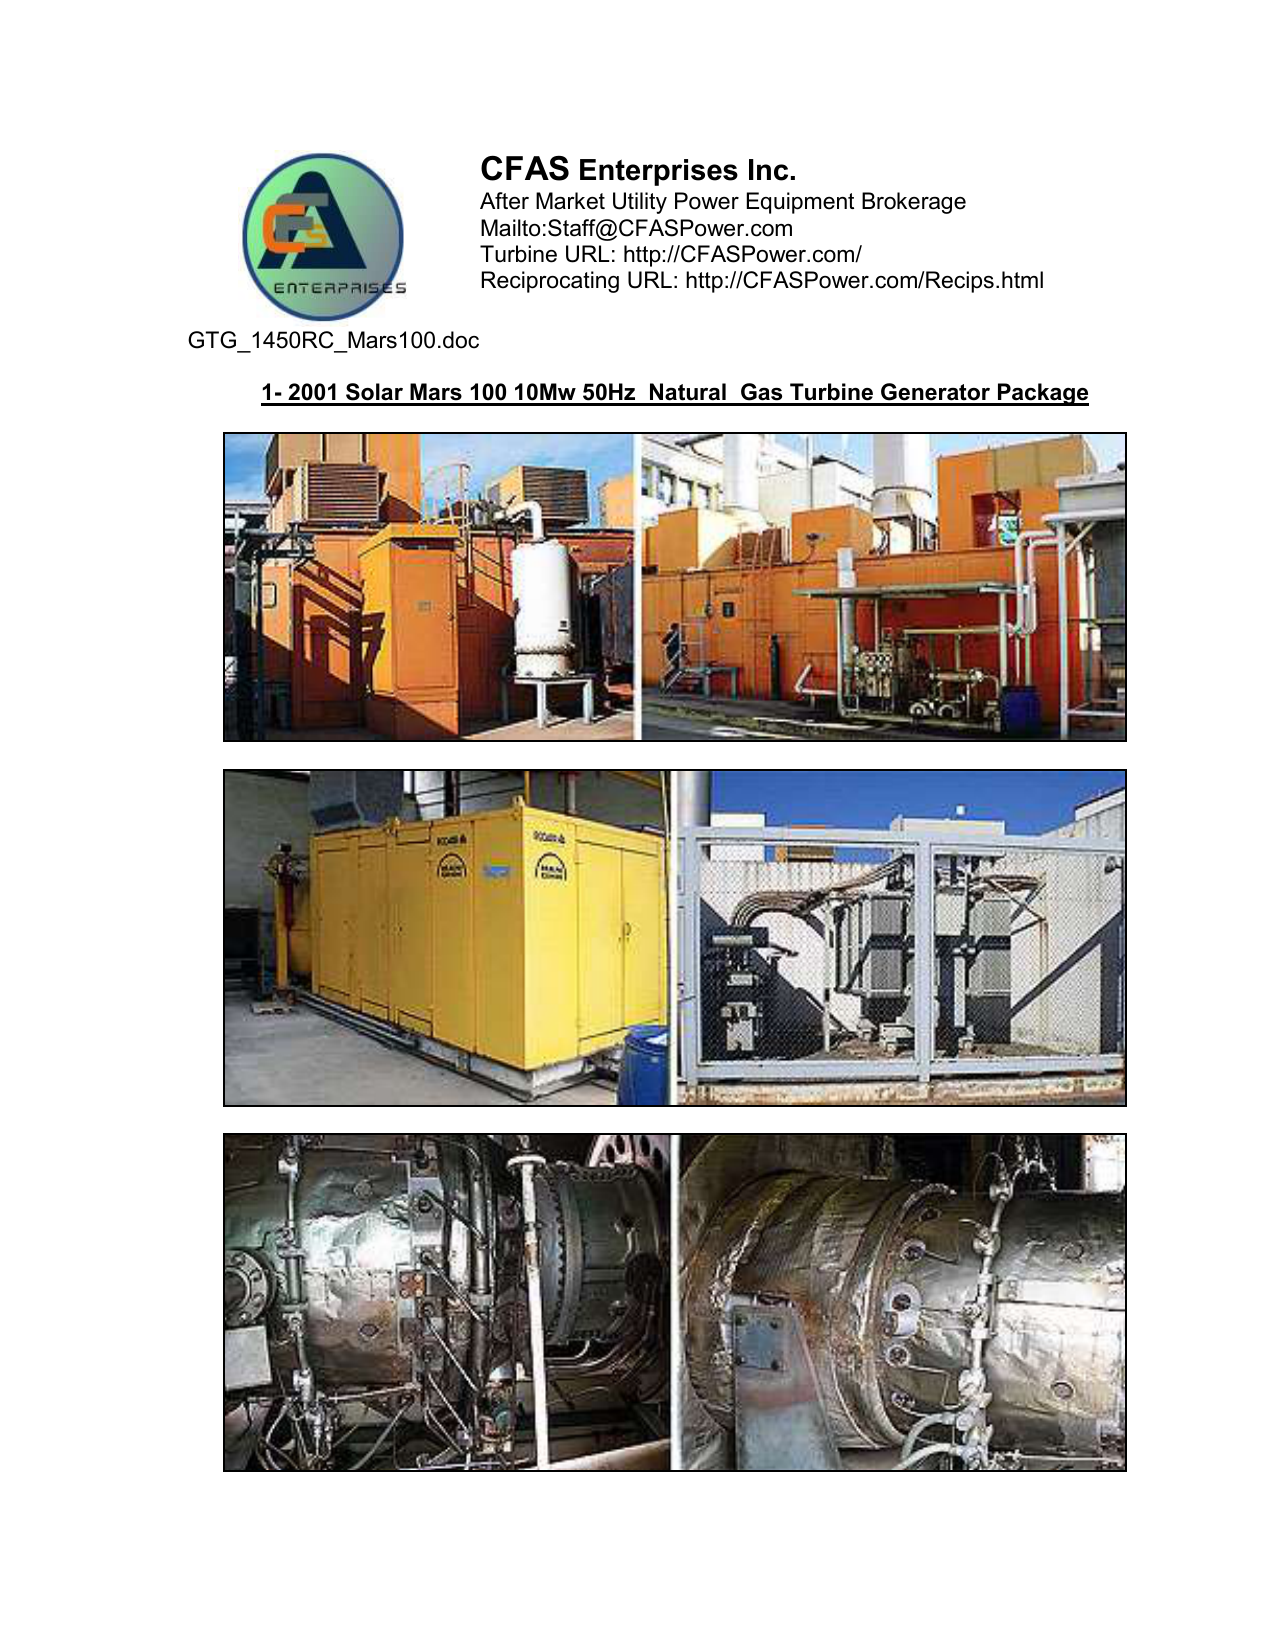 Supply of Solar Mars 100 Gas Turbine Generator Package